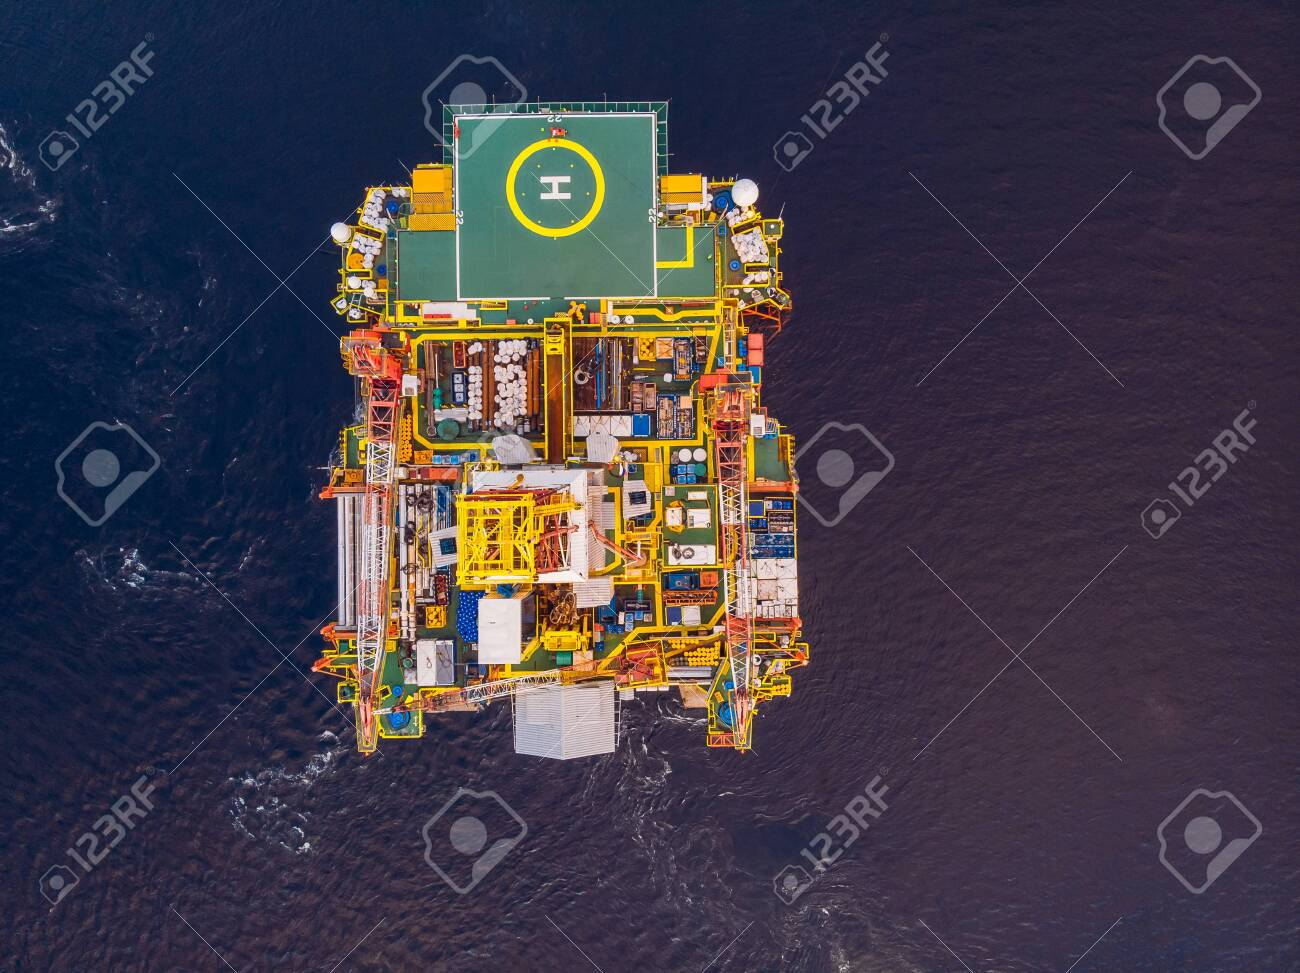 Offshore oil rig for installation sea for repairs, aerial top view - 132523153